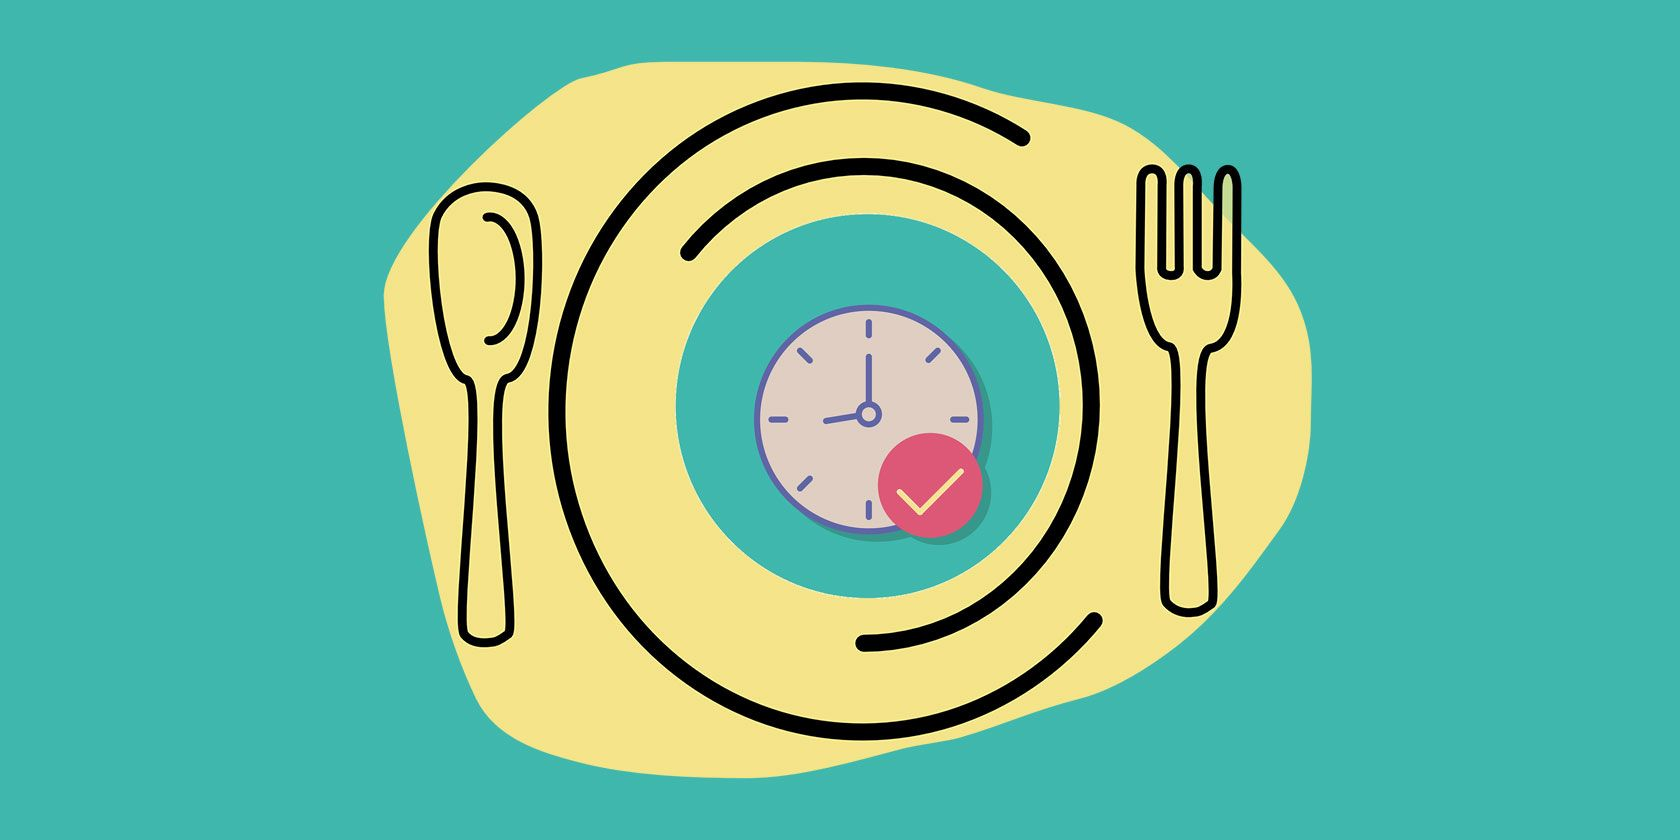 Intermittent Fasting Apps and Guides to Lose Weight